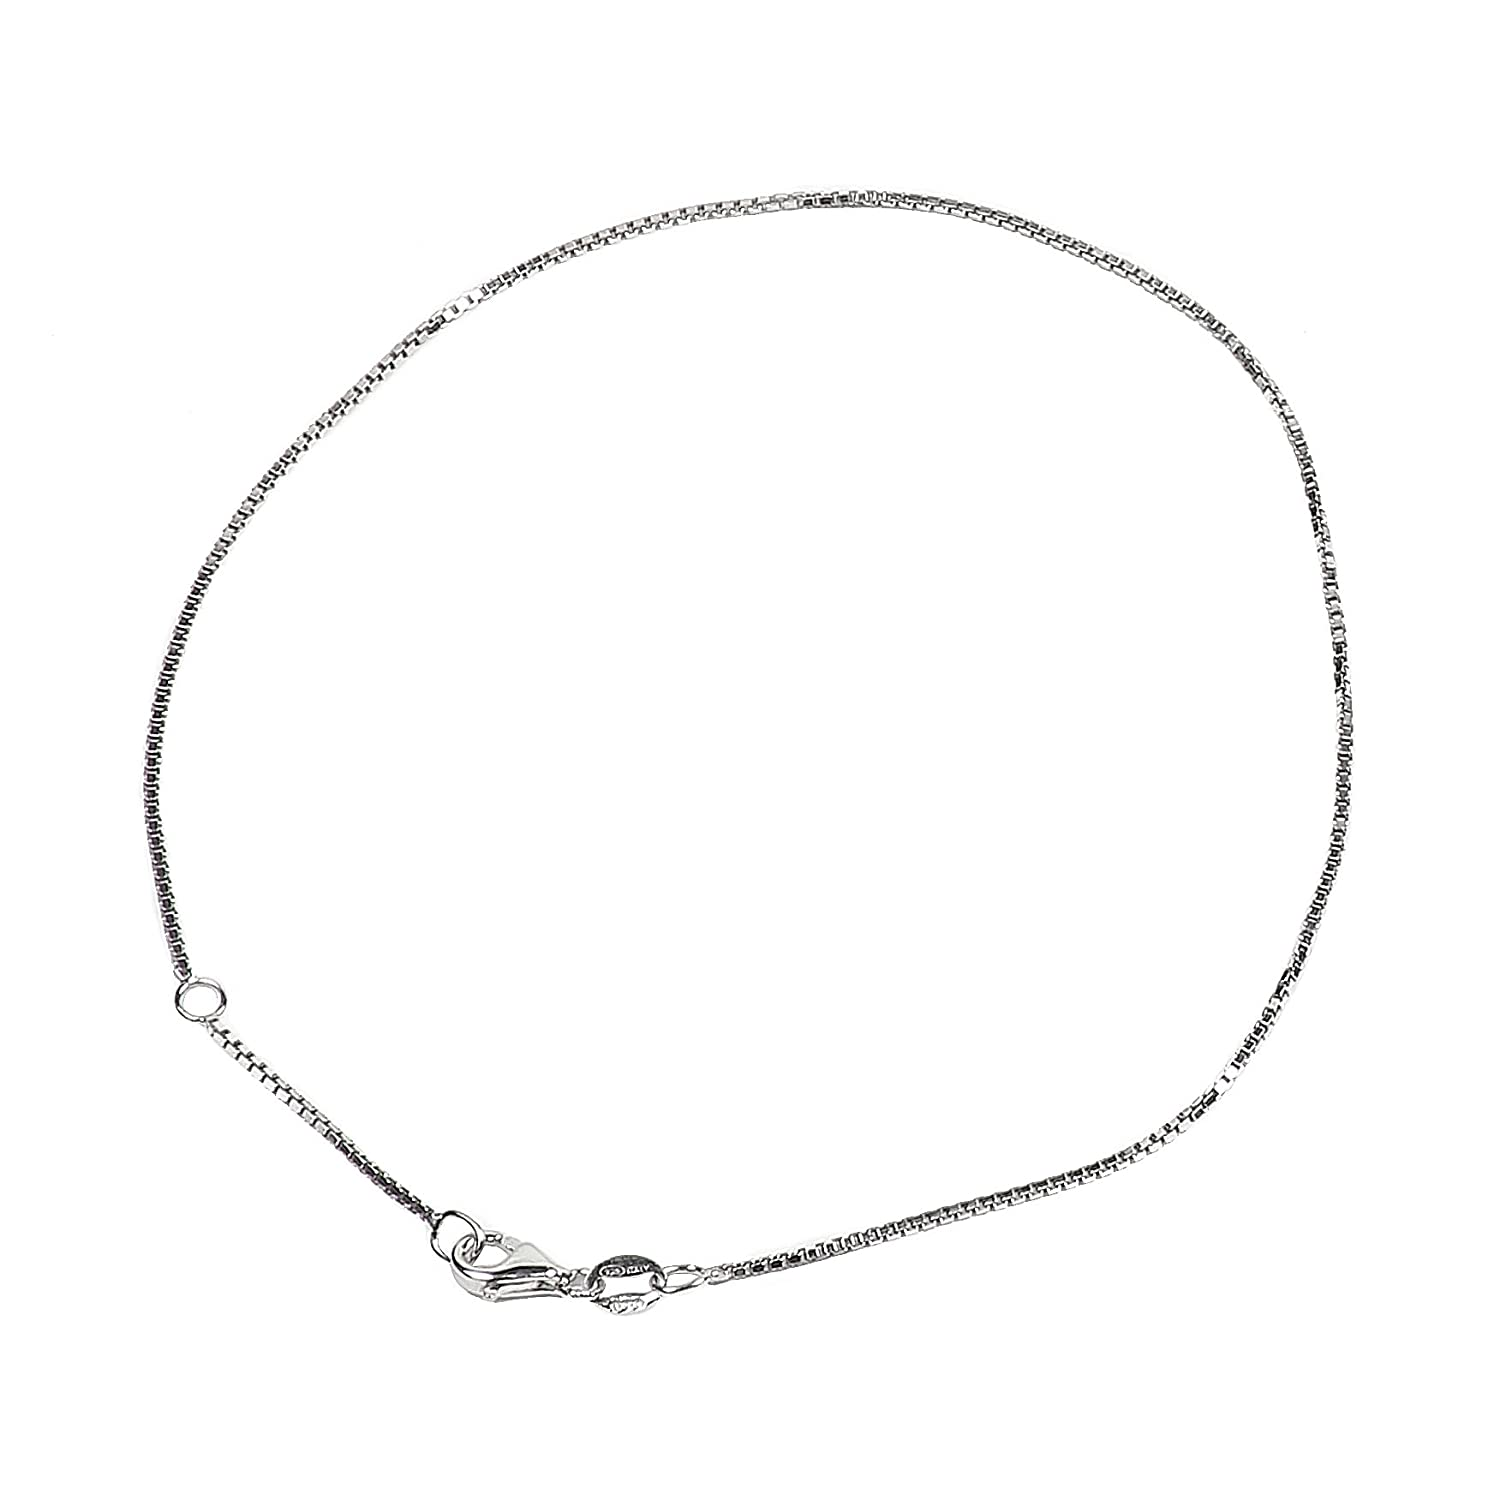 925 Sterling Silver Diamond-Cut Box Chain with Pear Shape Clasp-Rhodium Finish Chain Craft USA BX100D4-10RHLP0